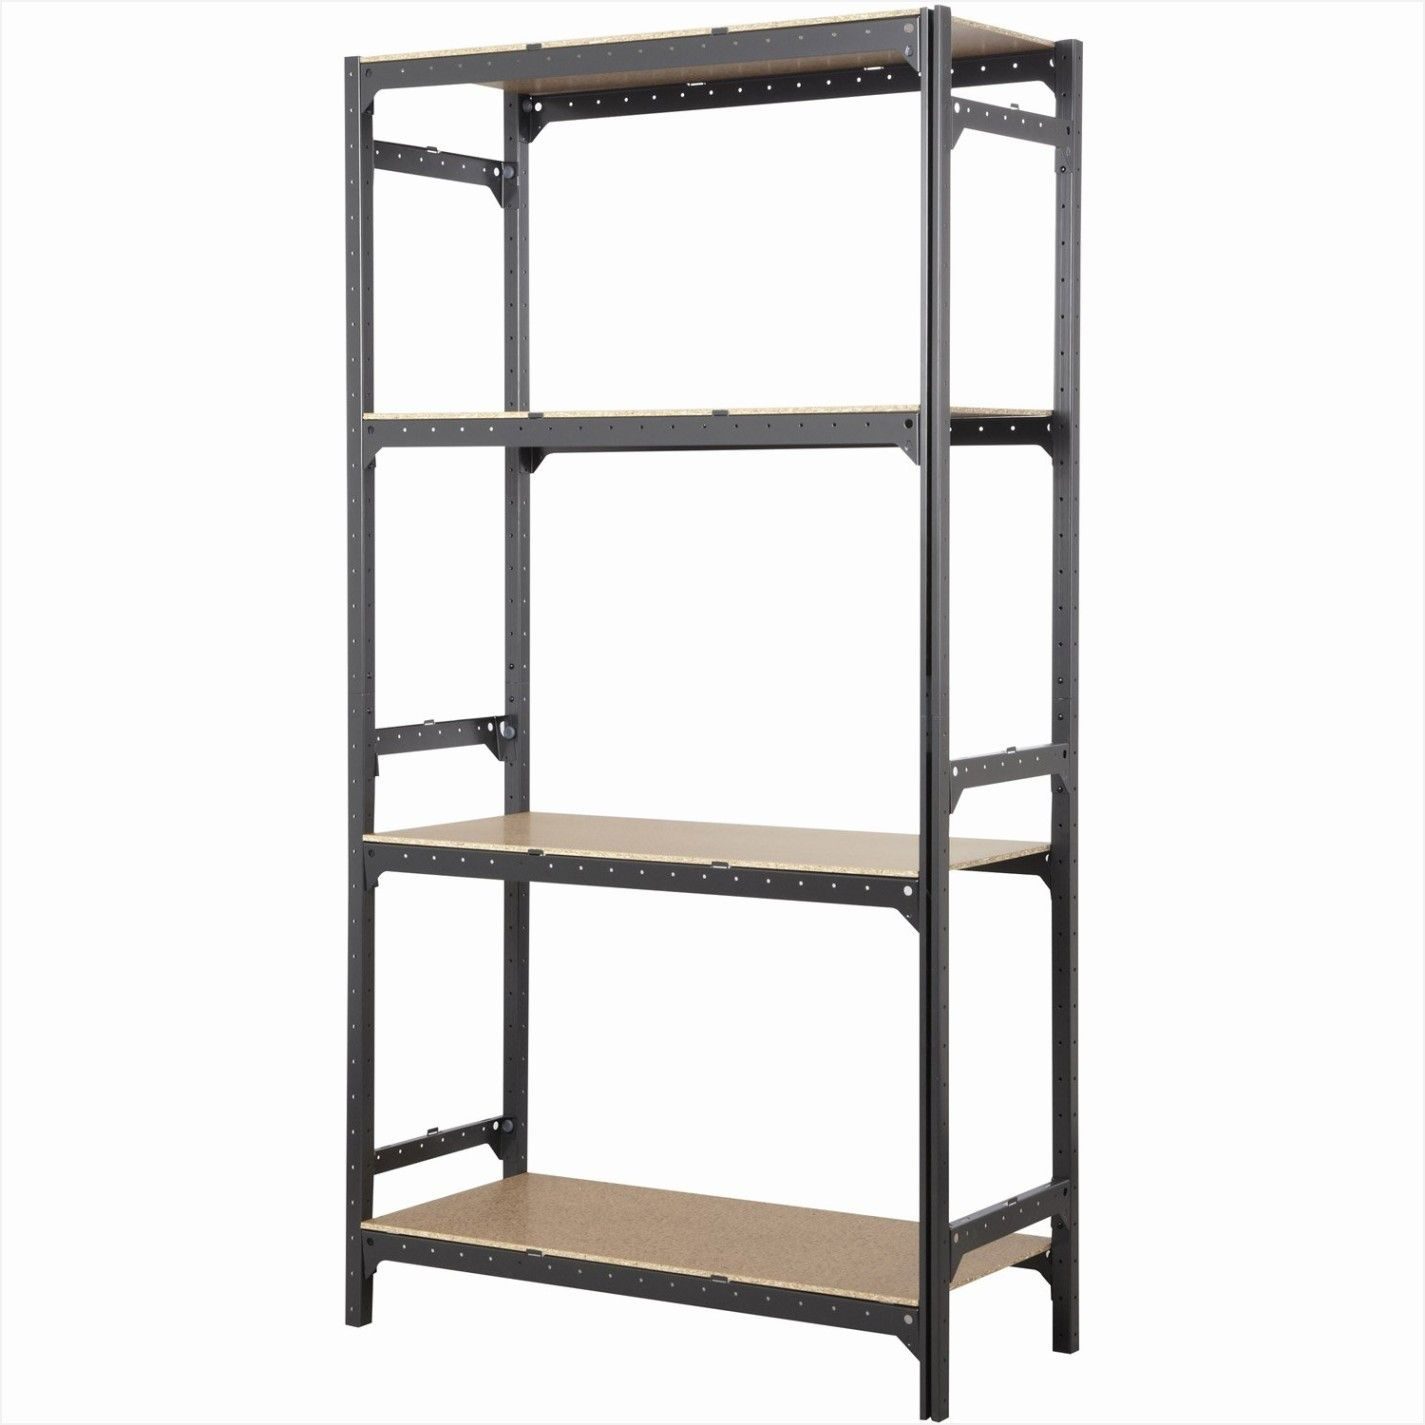 Fresh Armoire Metallique Rangement Pour Garage Decor Pine Dining Table Ladder Bookcase